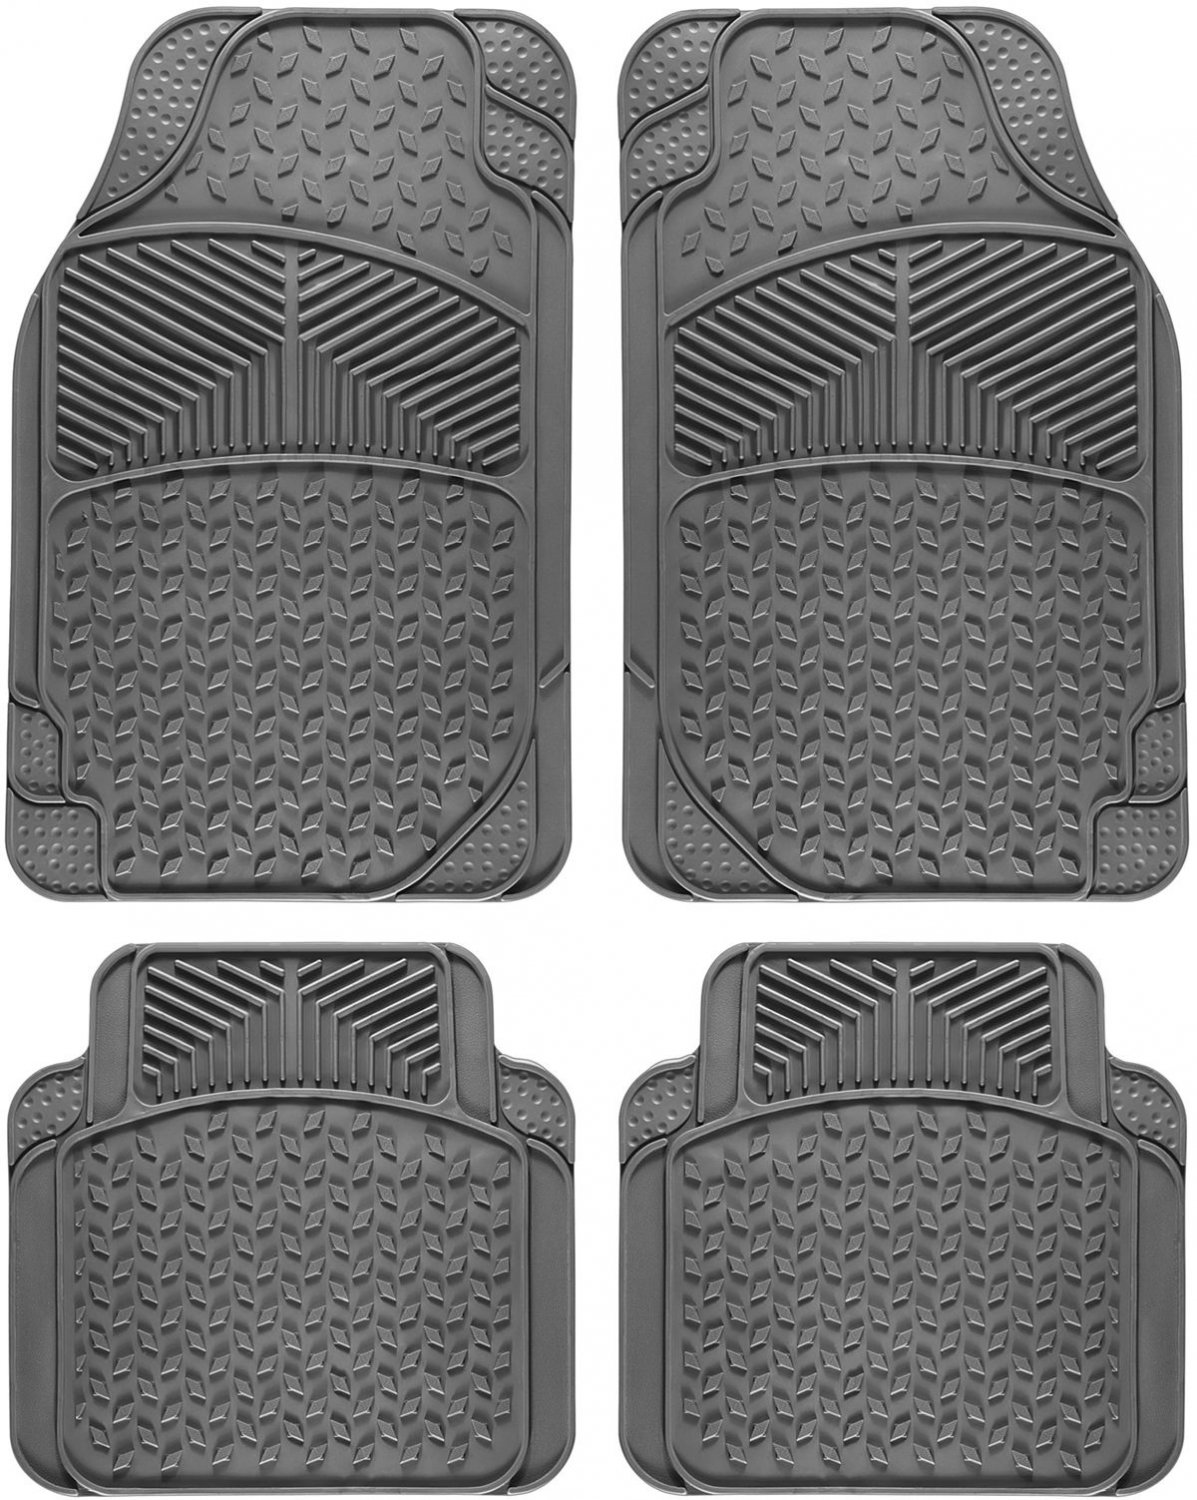 Car Floor Mats For Toyota Camry 4pc Set All Weather Rubber